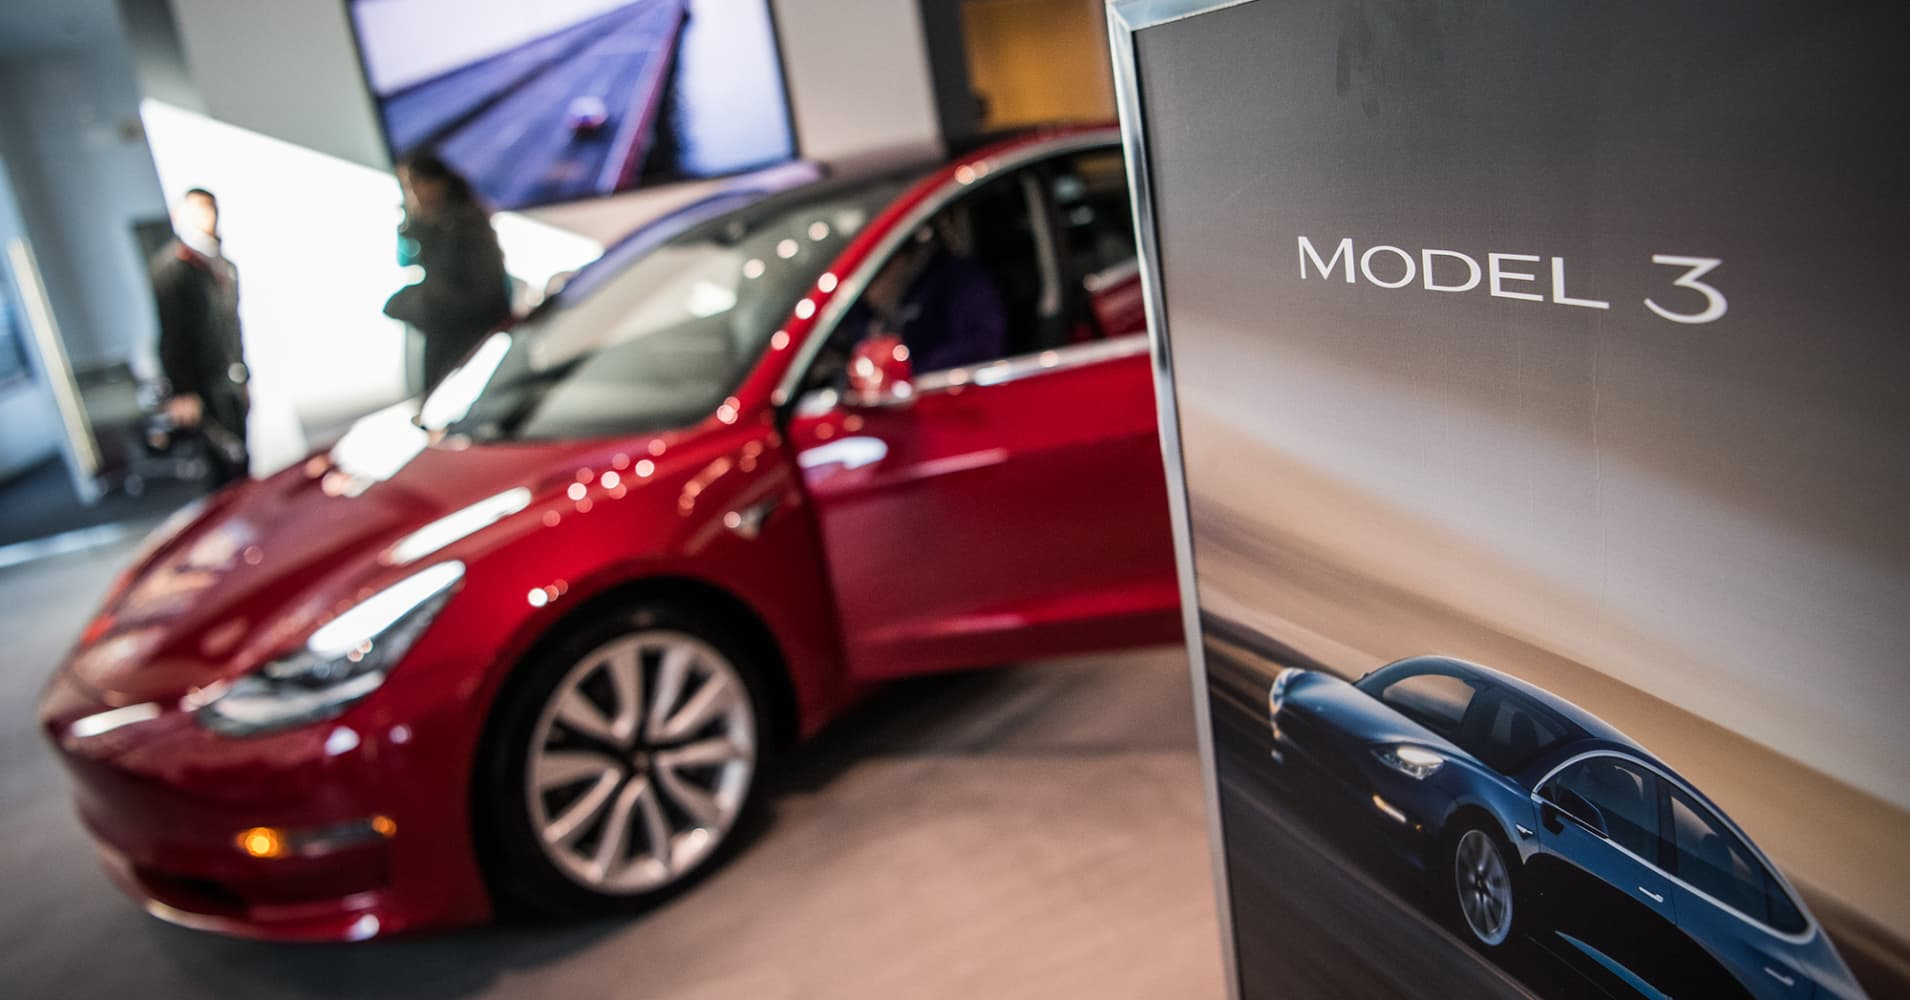 Demand for Tesla Model 3 'Looks Very Strong into 2019 and Beyond'